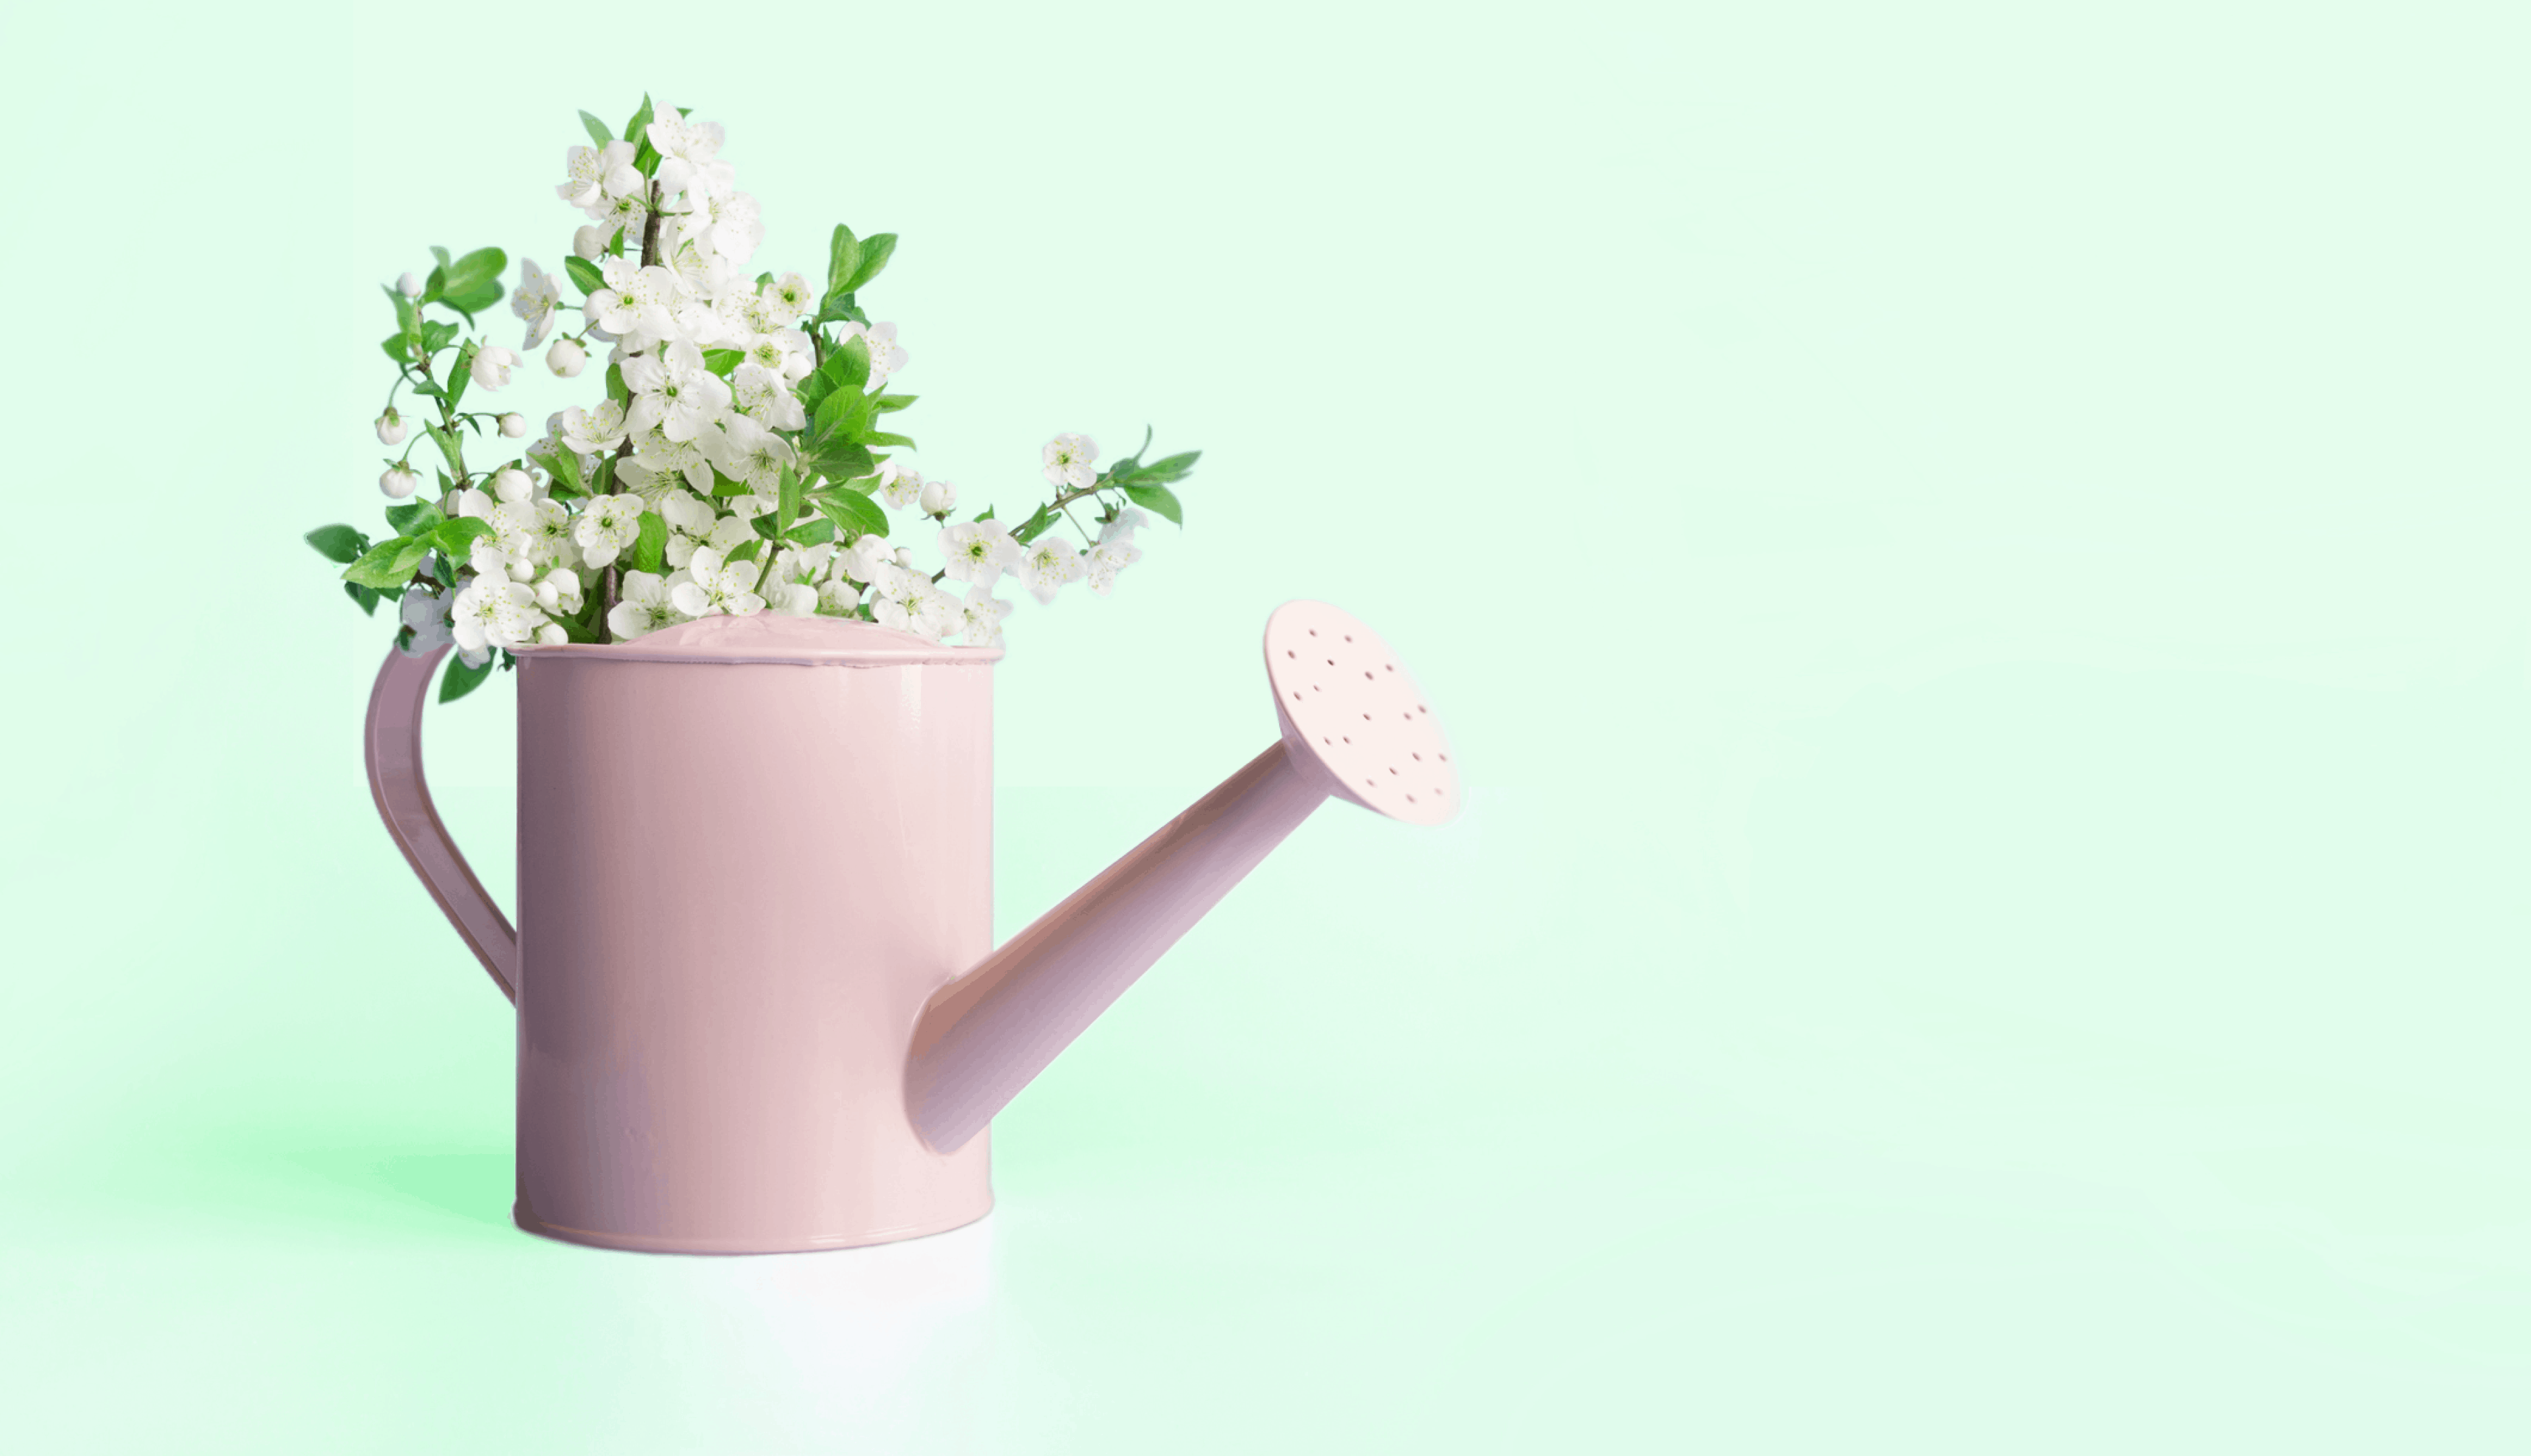 pink watering can with flowers on a green background